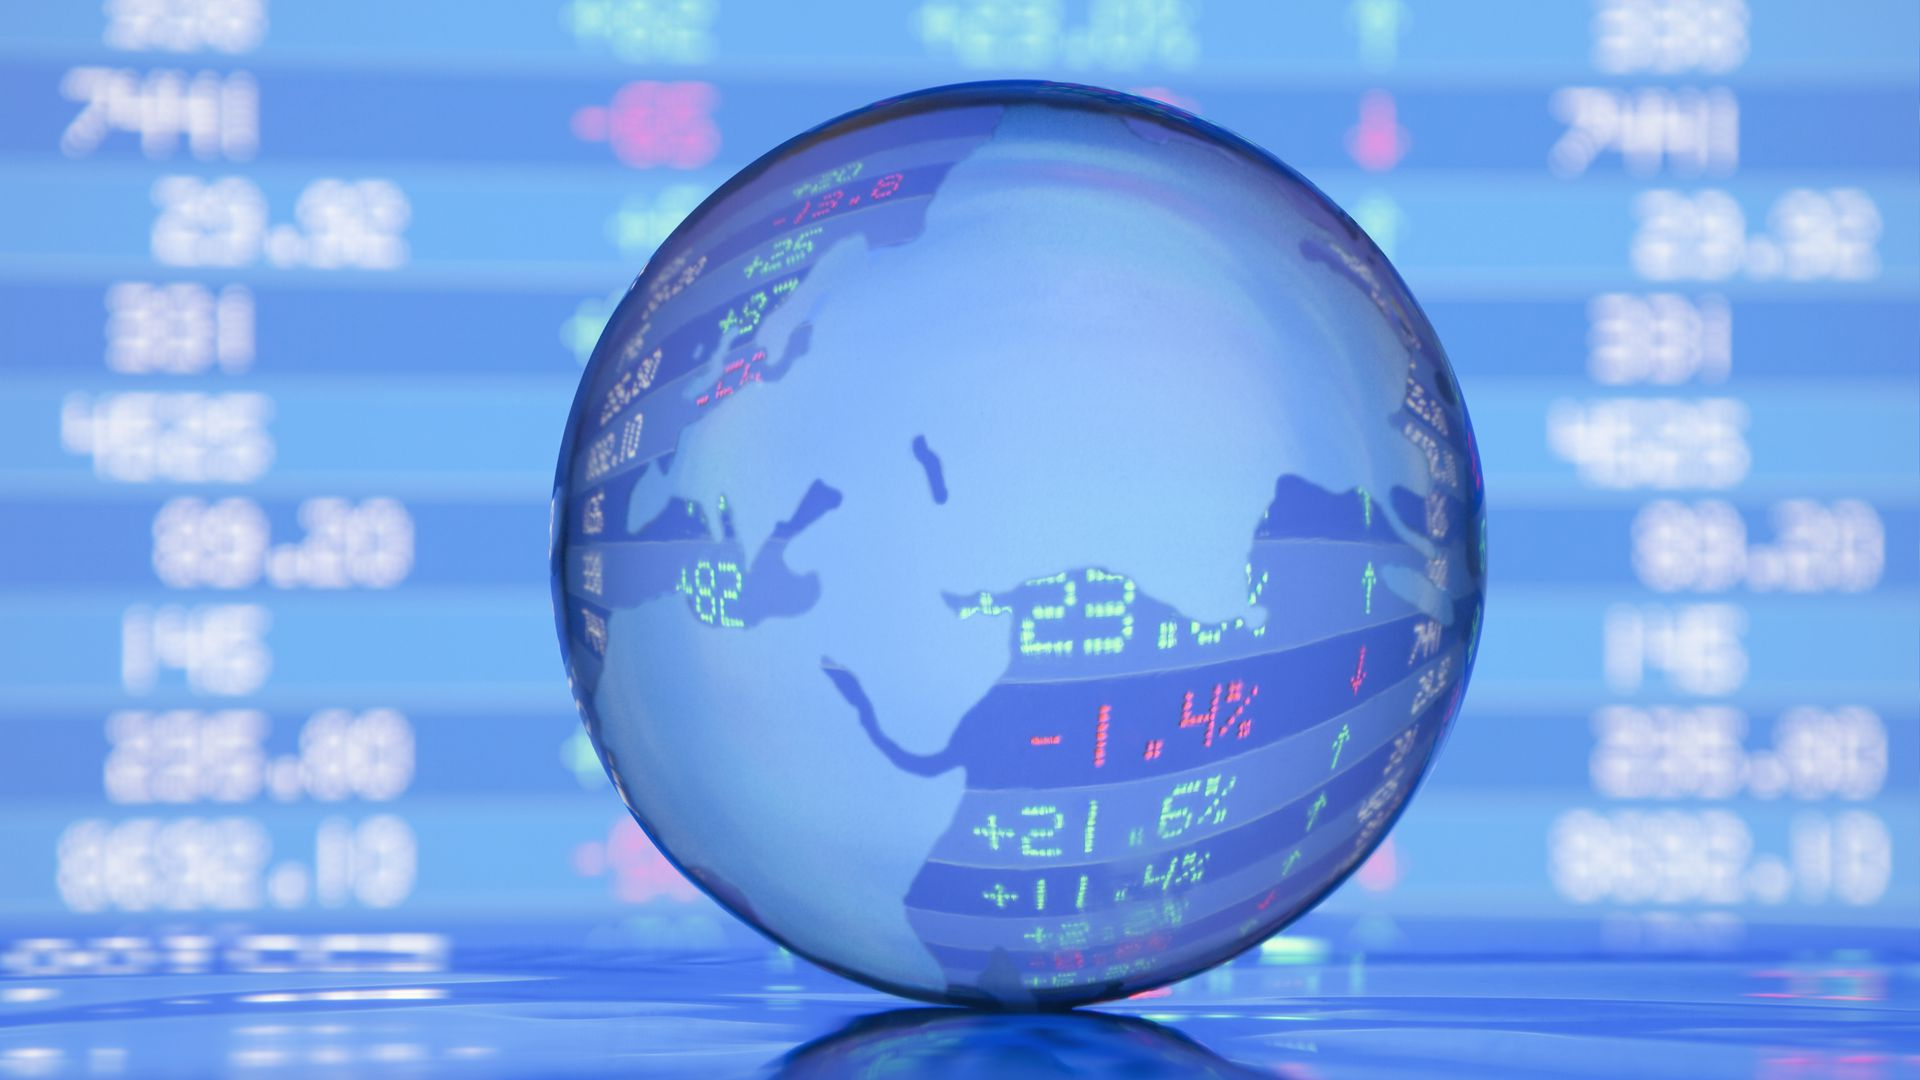 A globe in front of stock market listings